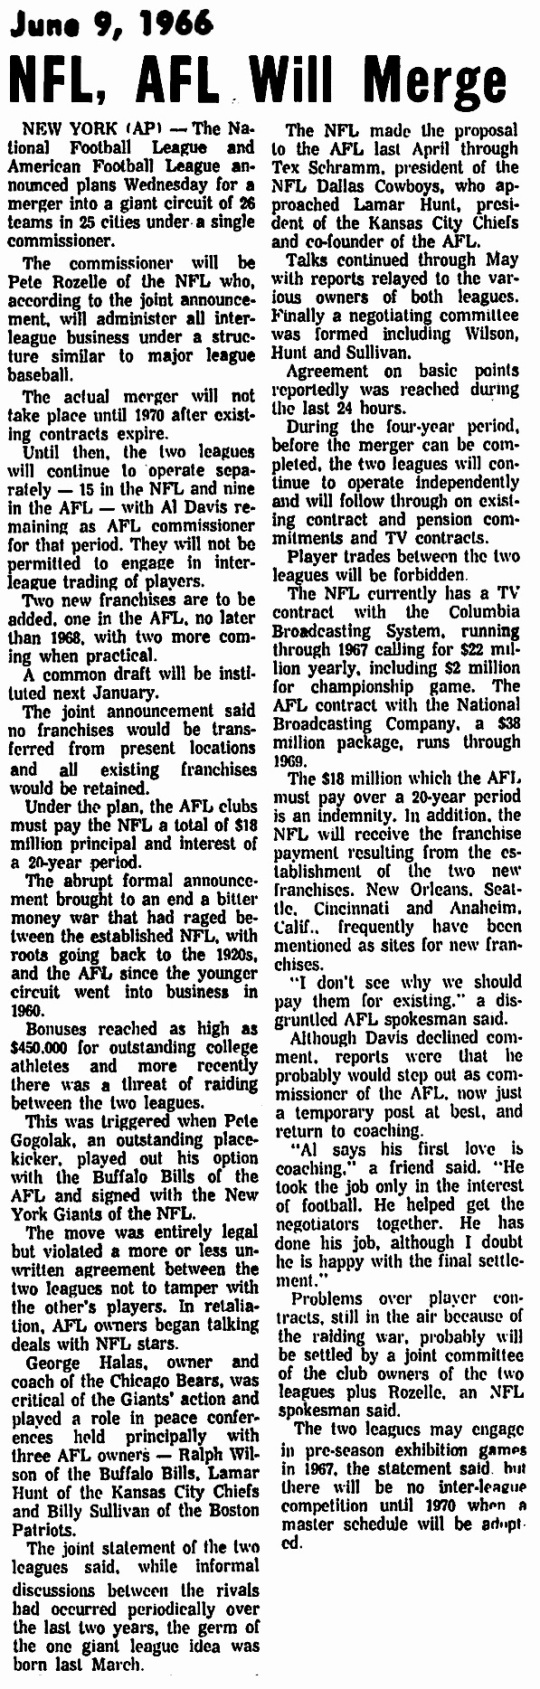 NFL AFL merger 1966